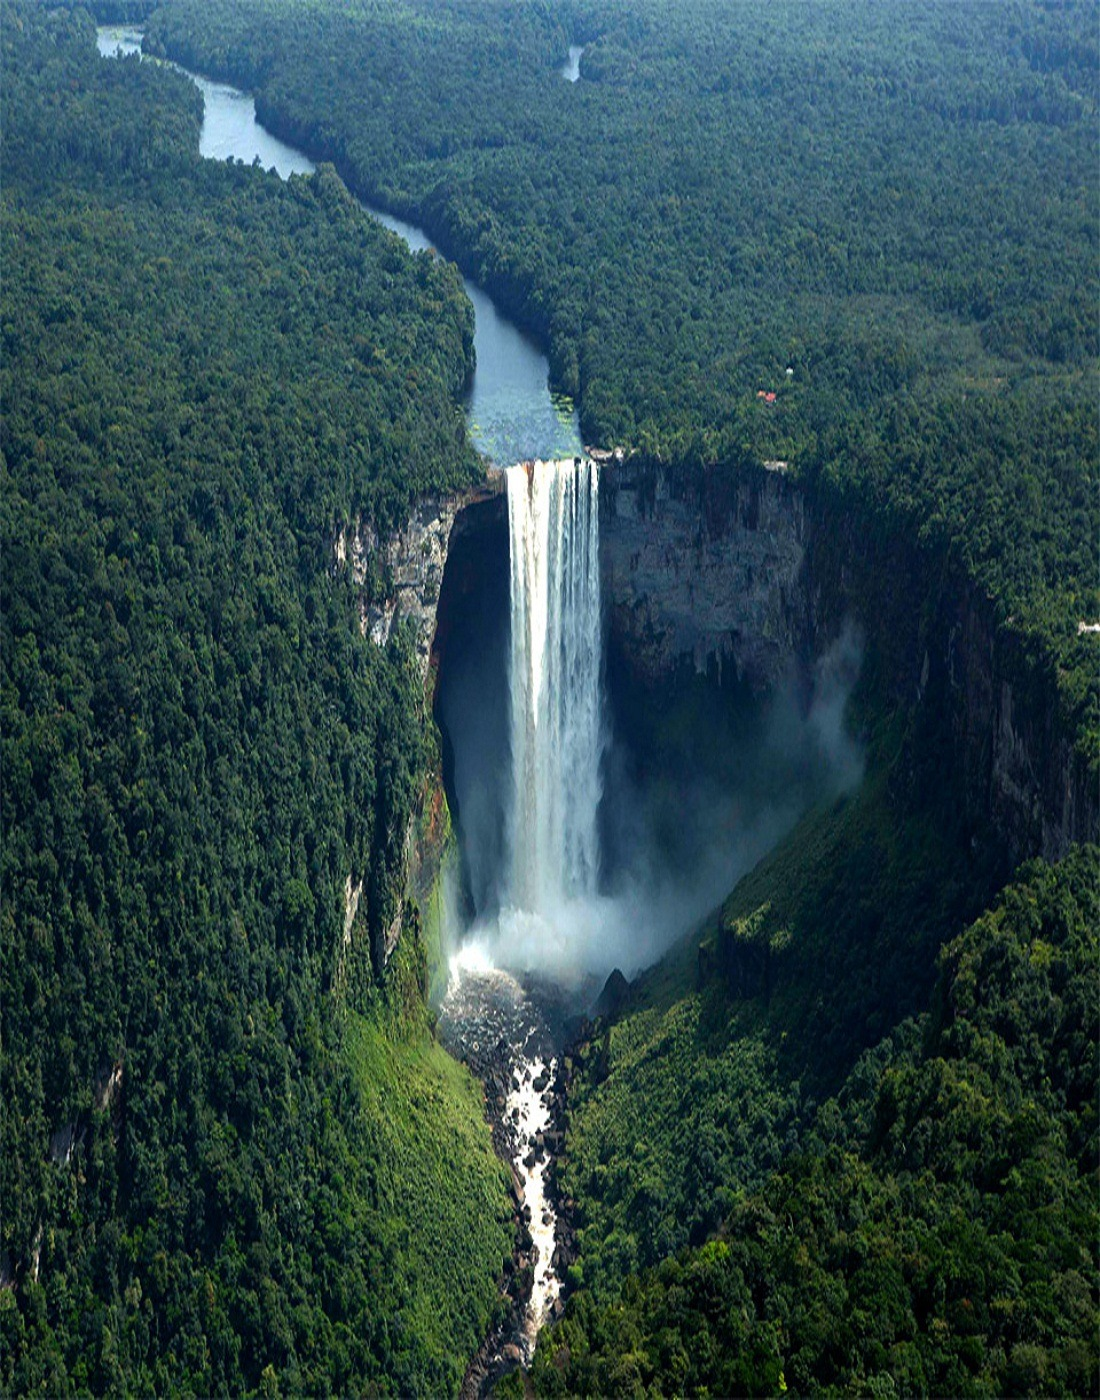 davinci-chode:   The Worlds largest drop waterfall, Kaieteur Falls